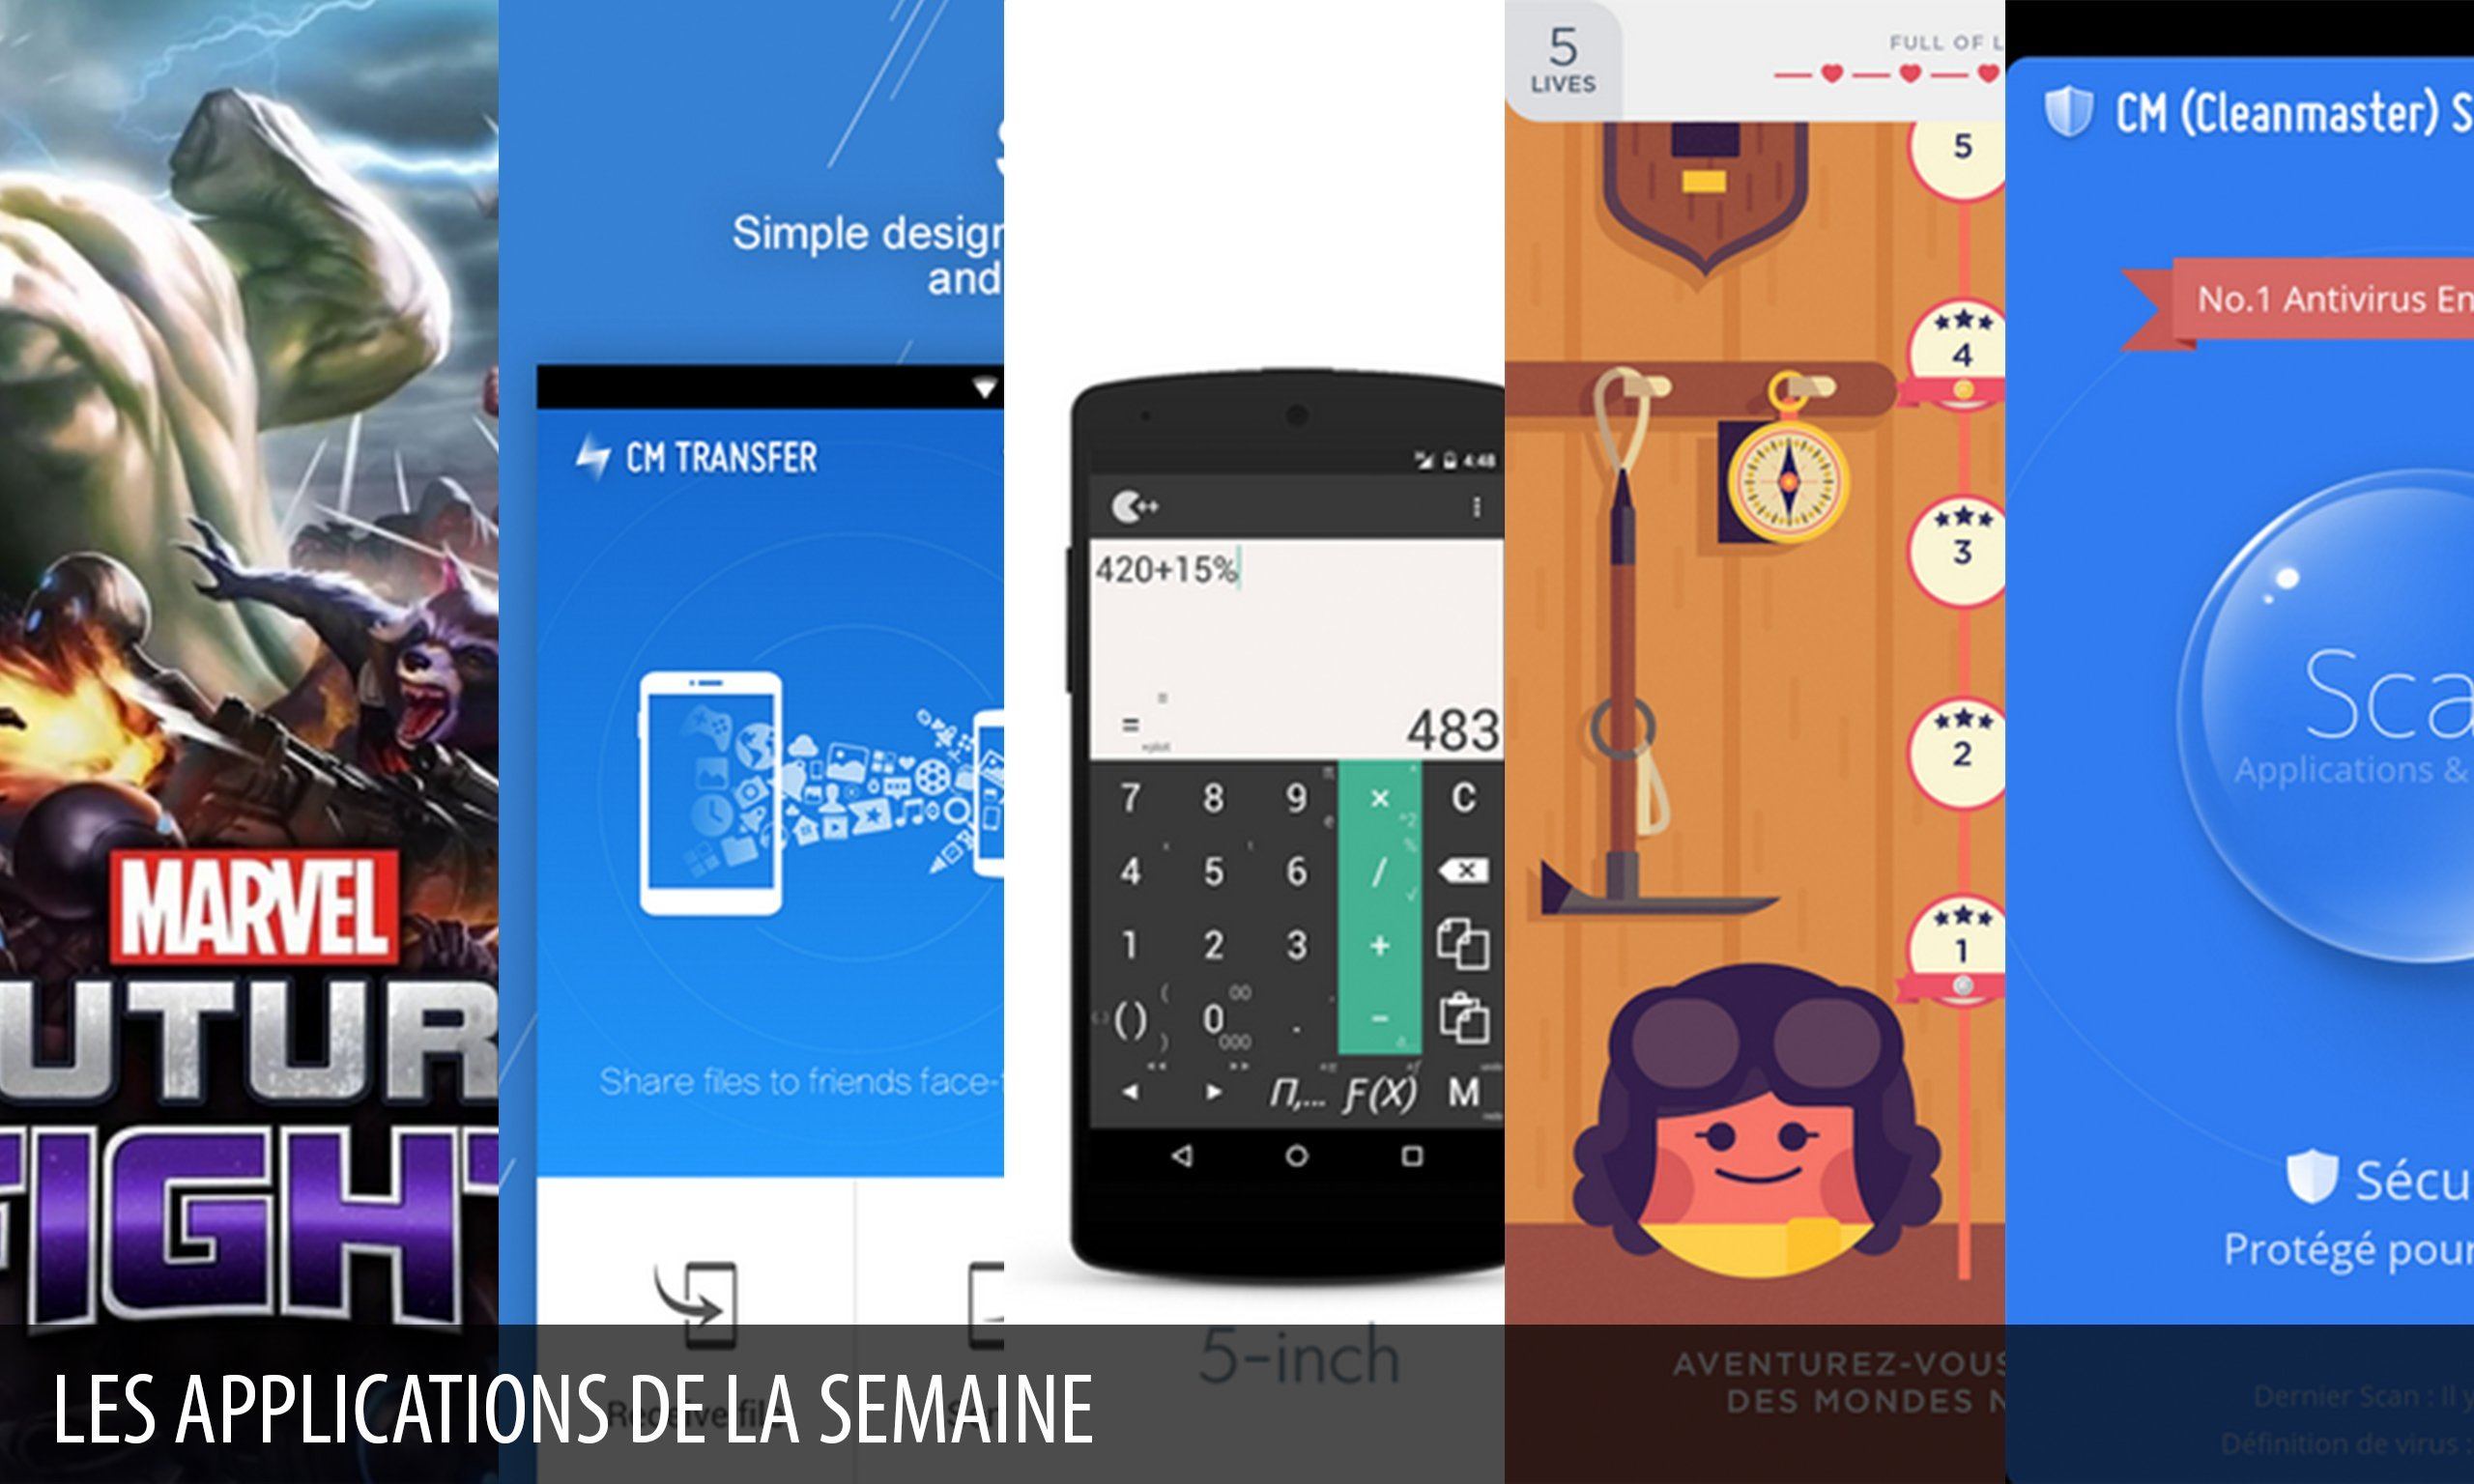 Les apps de la semaine : Marvel Future Fight, CM Transfer – Share files, Calculatrice ++, TwoDots, CM Security AppLock Antivirus